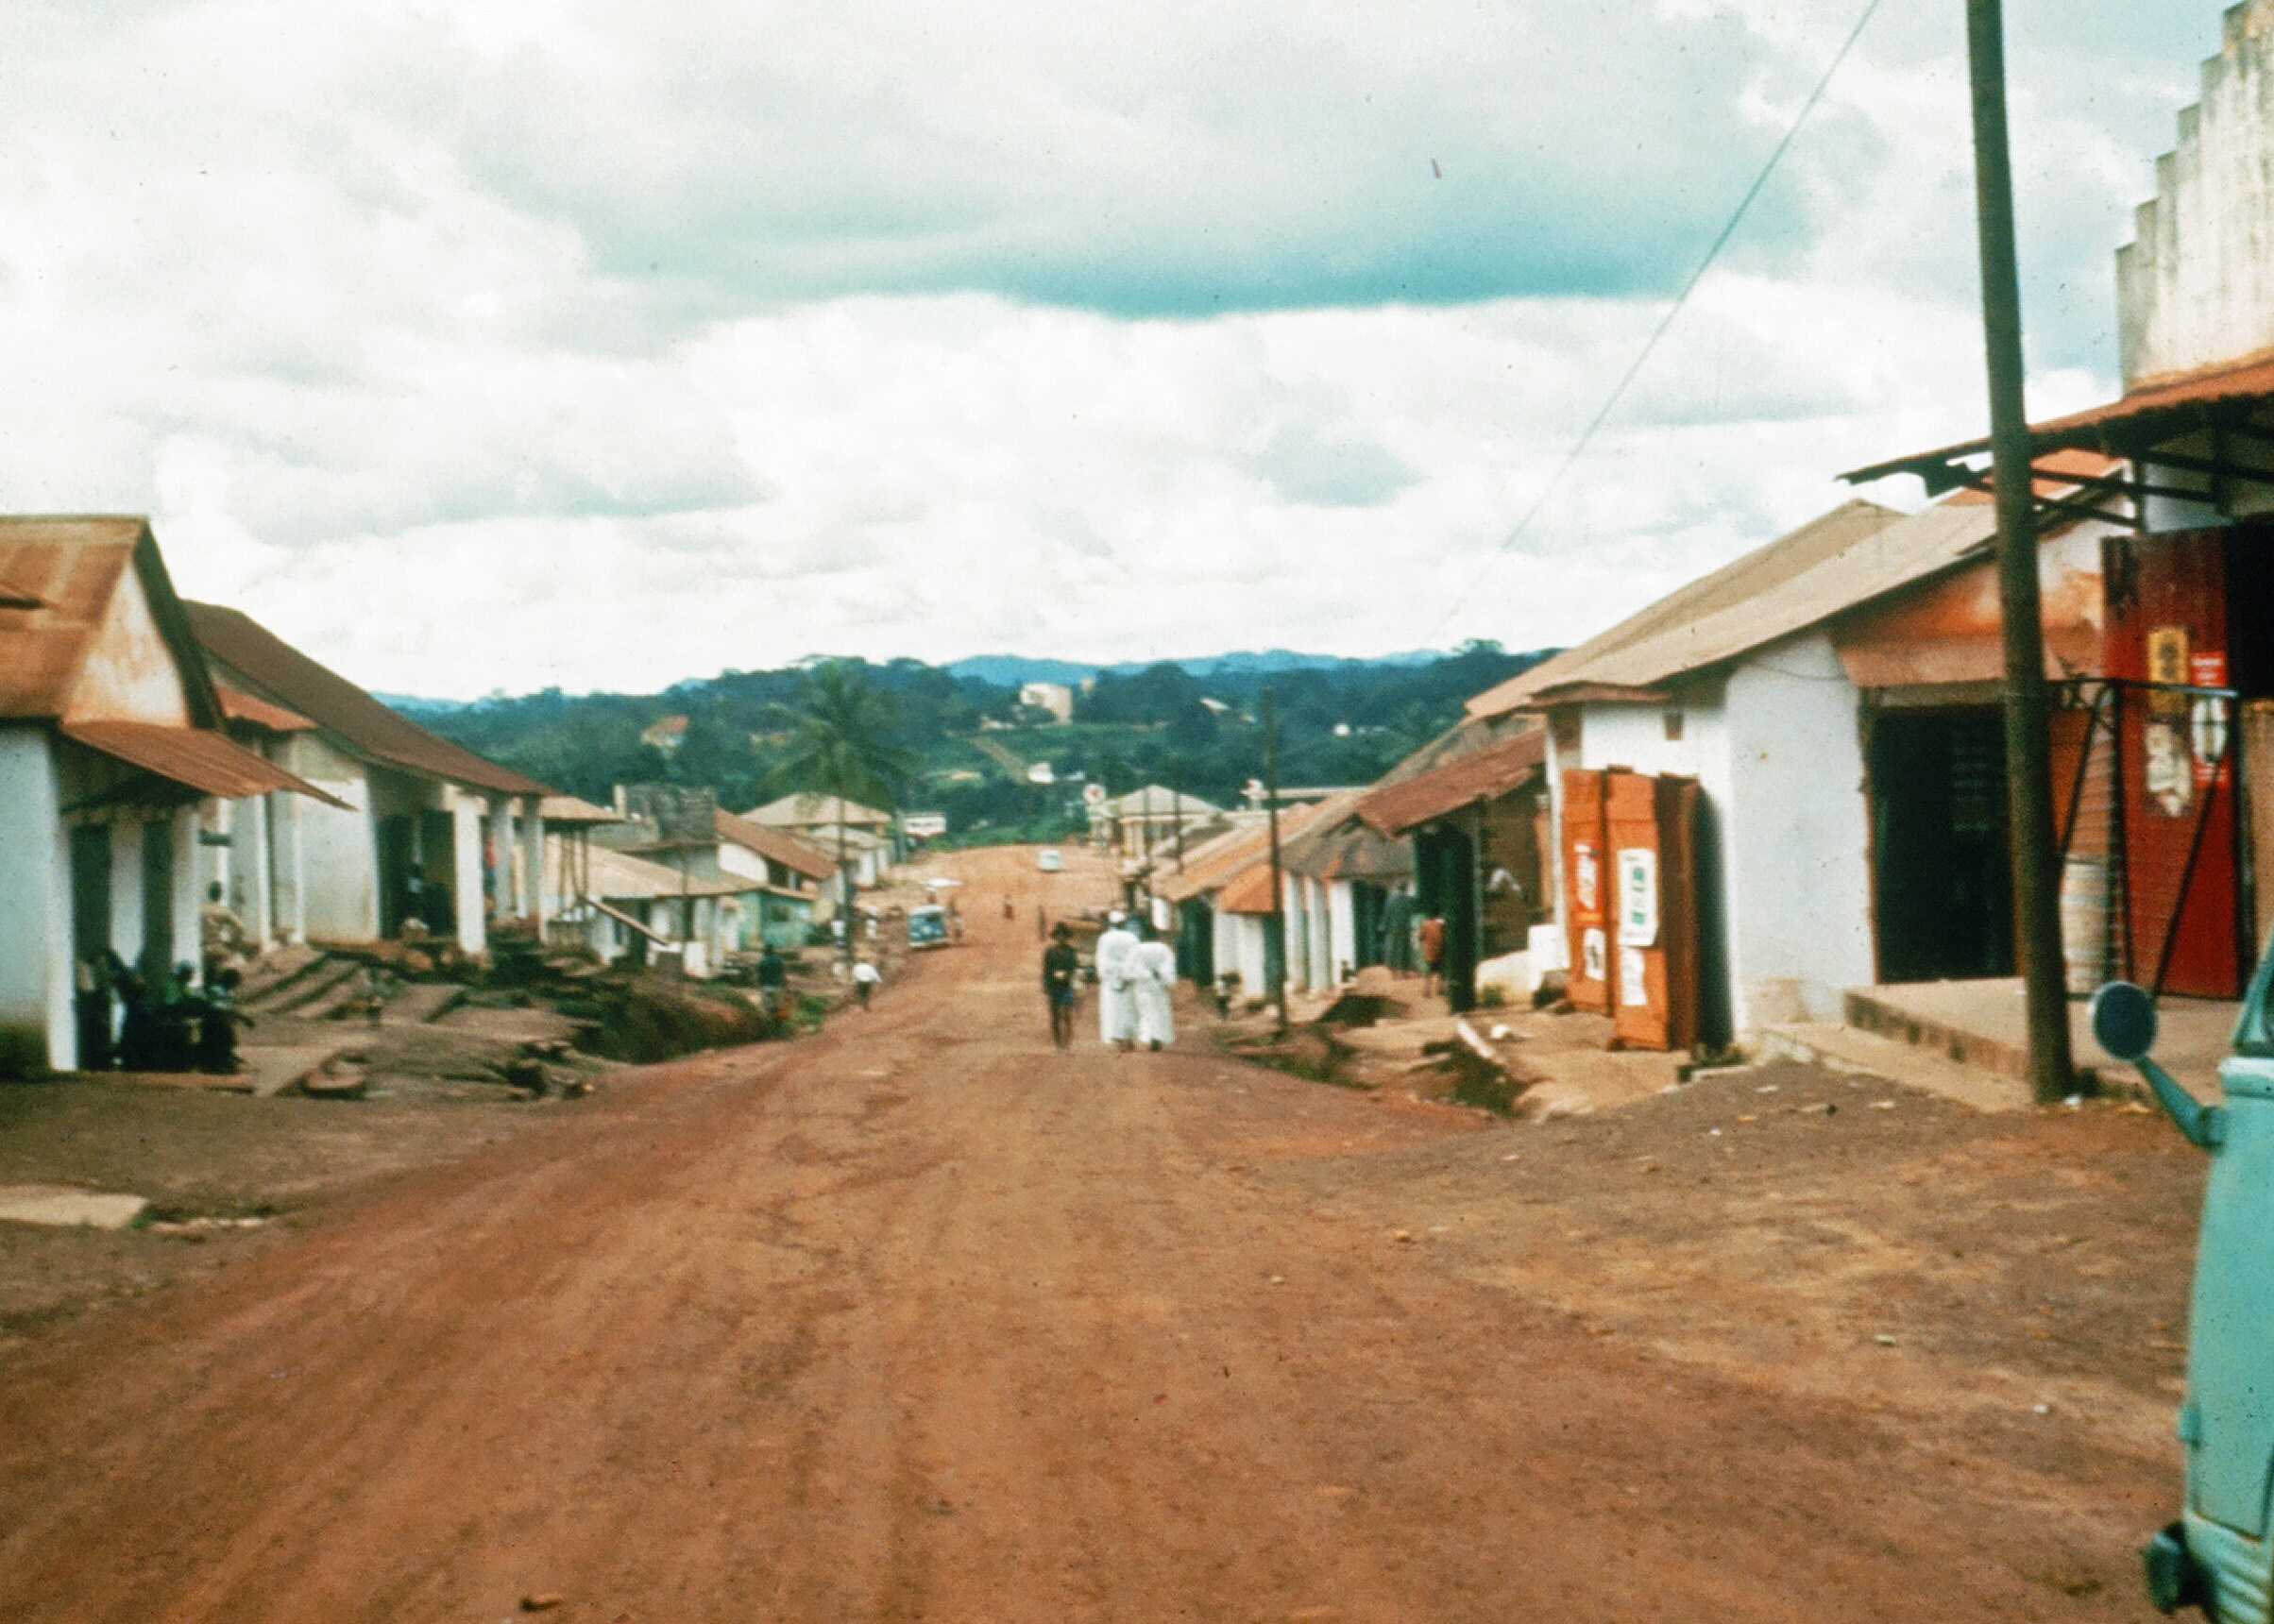 Gbarnga, Liberia where I served as a Peace Corps Volunteer from 1965-67. The photo was taken at that time.